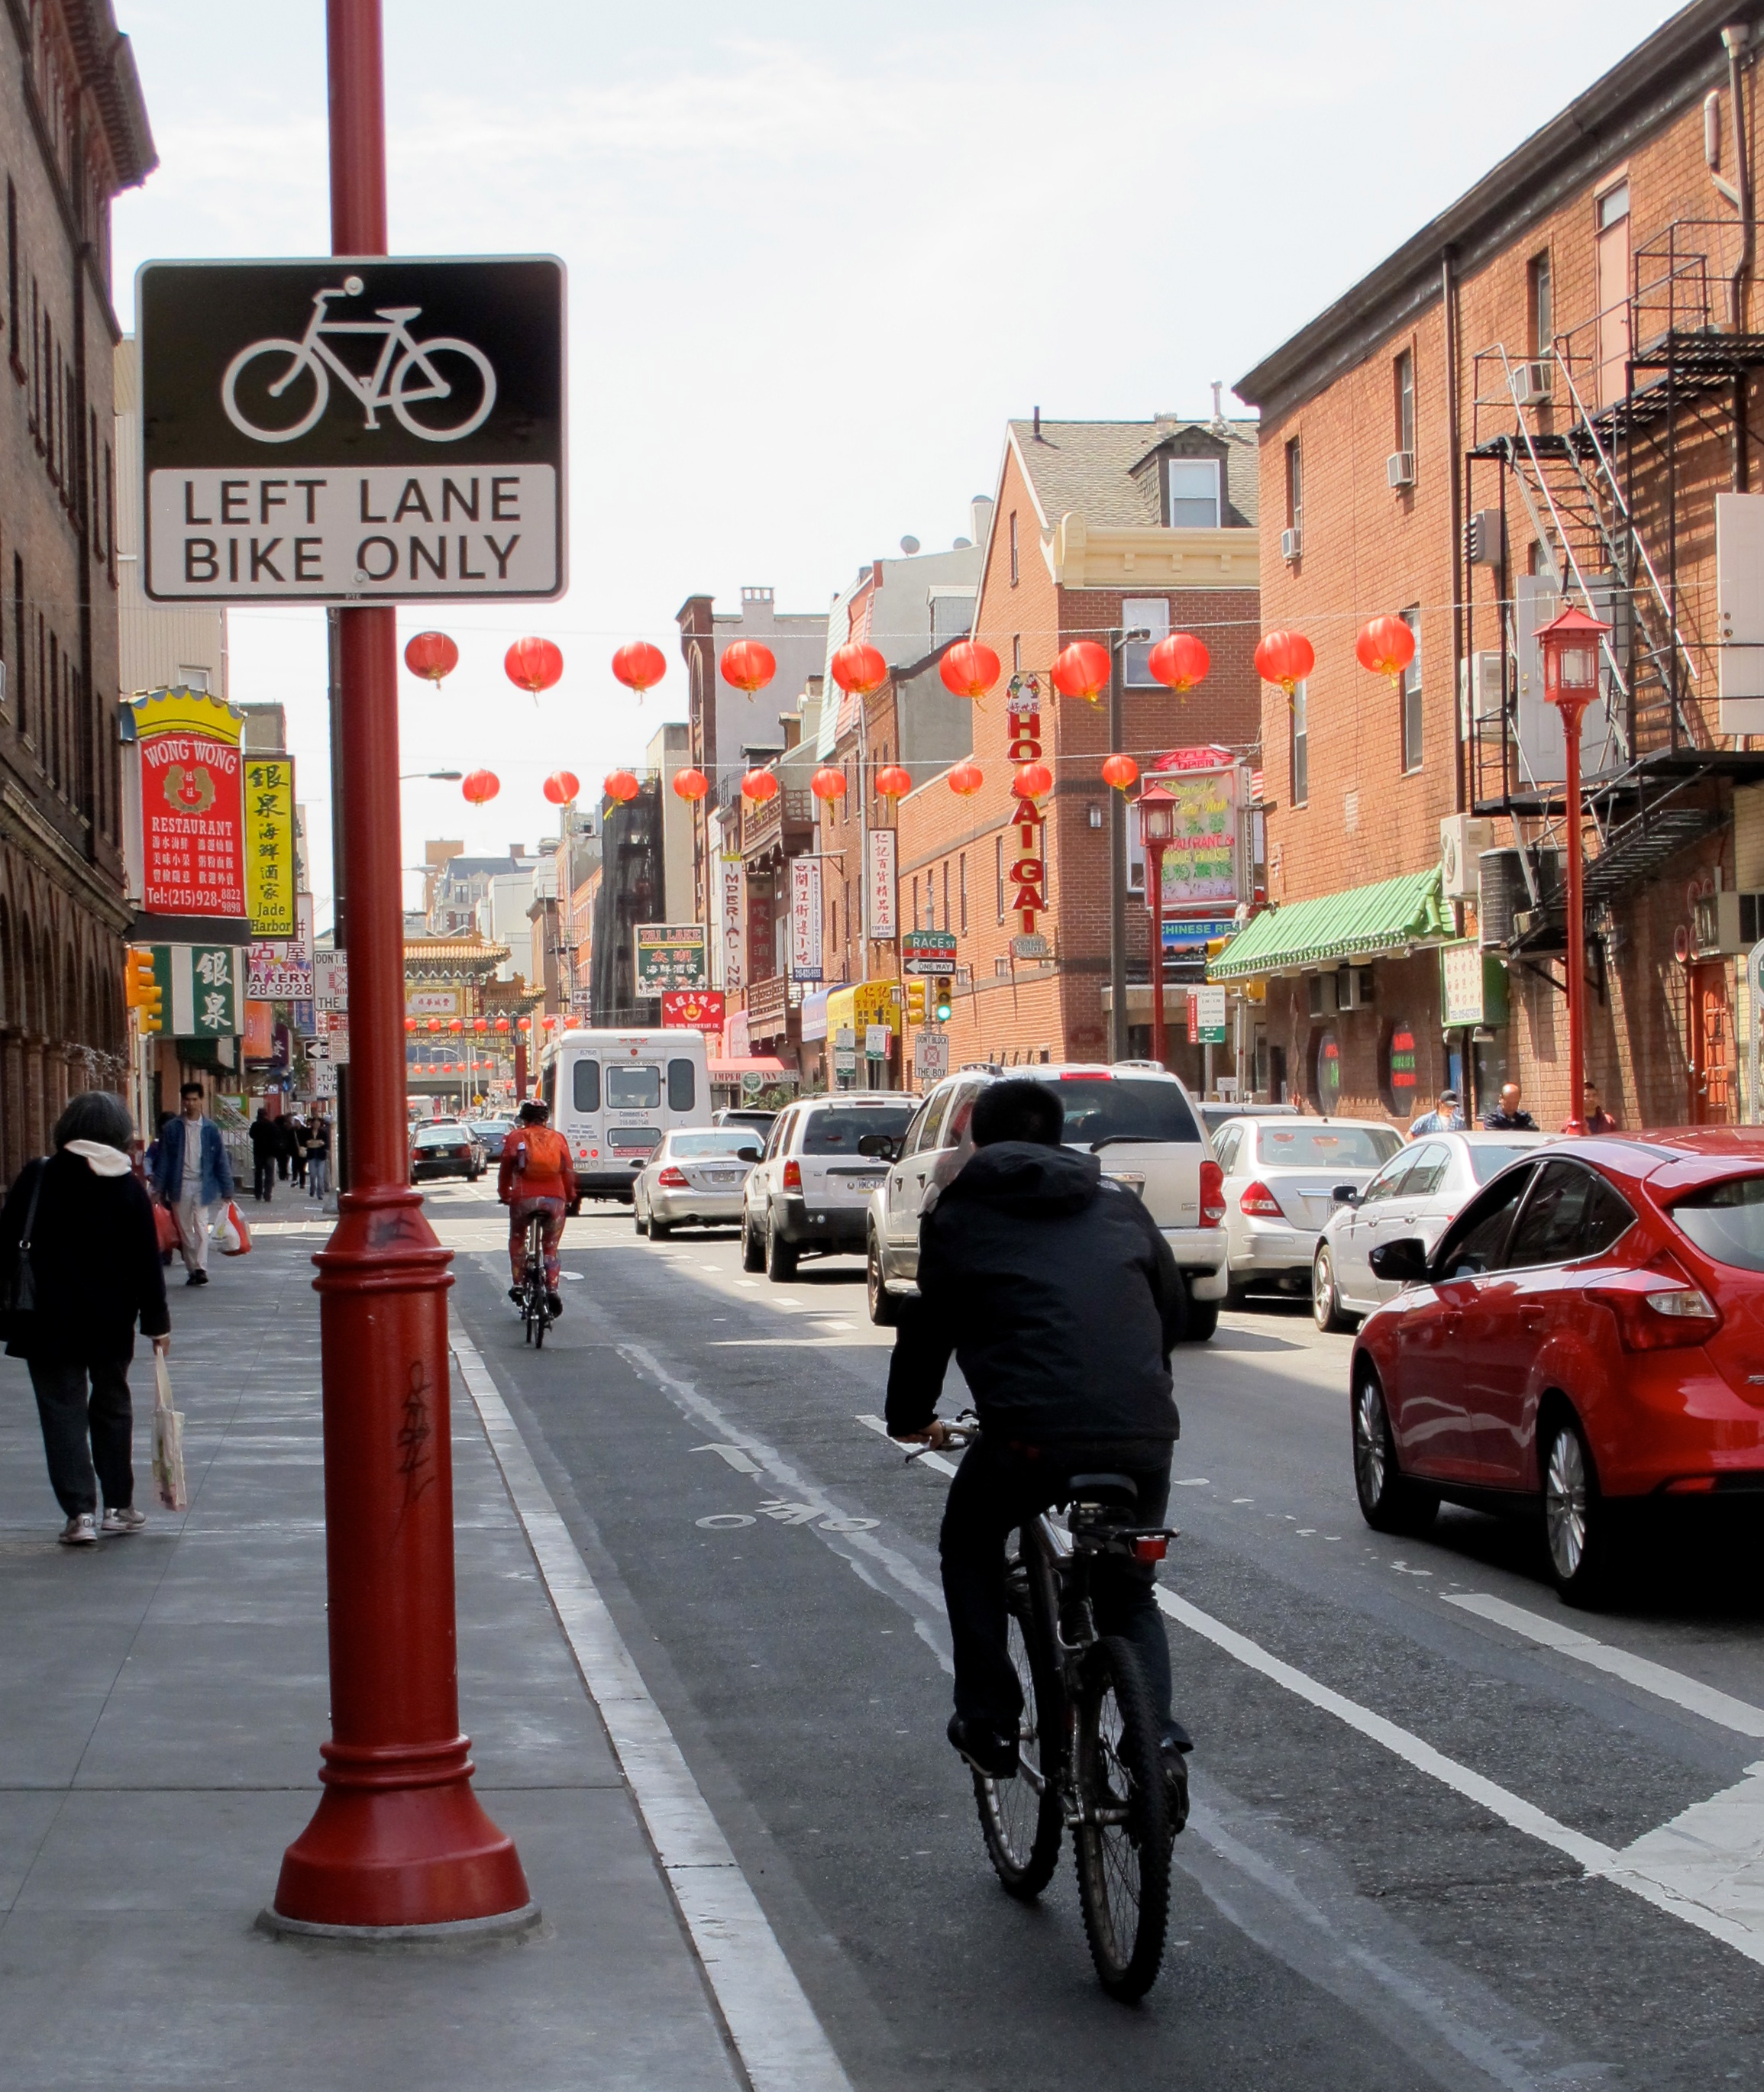 Chinatown: The 10th Street bike lane causes concern